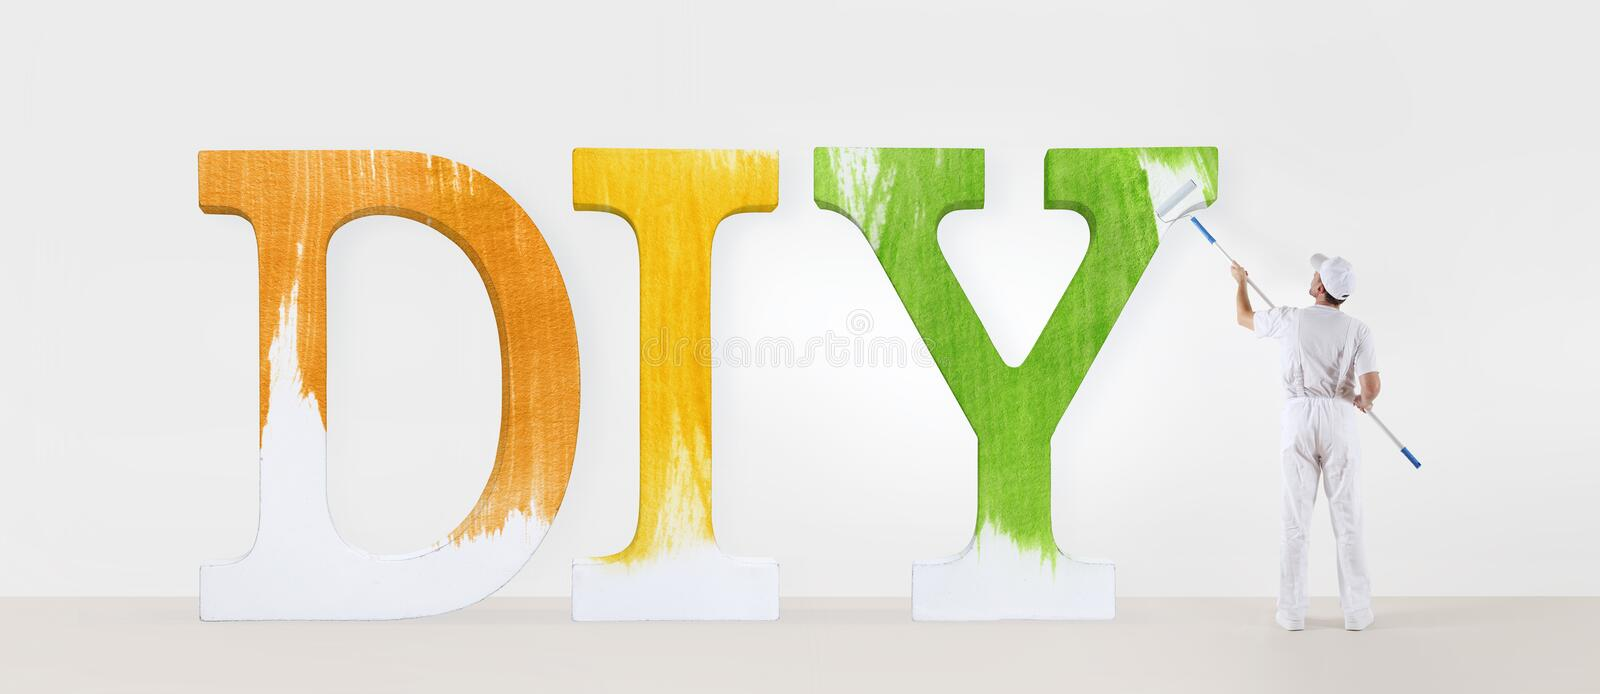 painter man with paint roller, painting a text diy on white blank wall, background house service concept. stock images